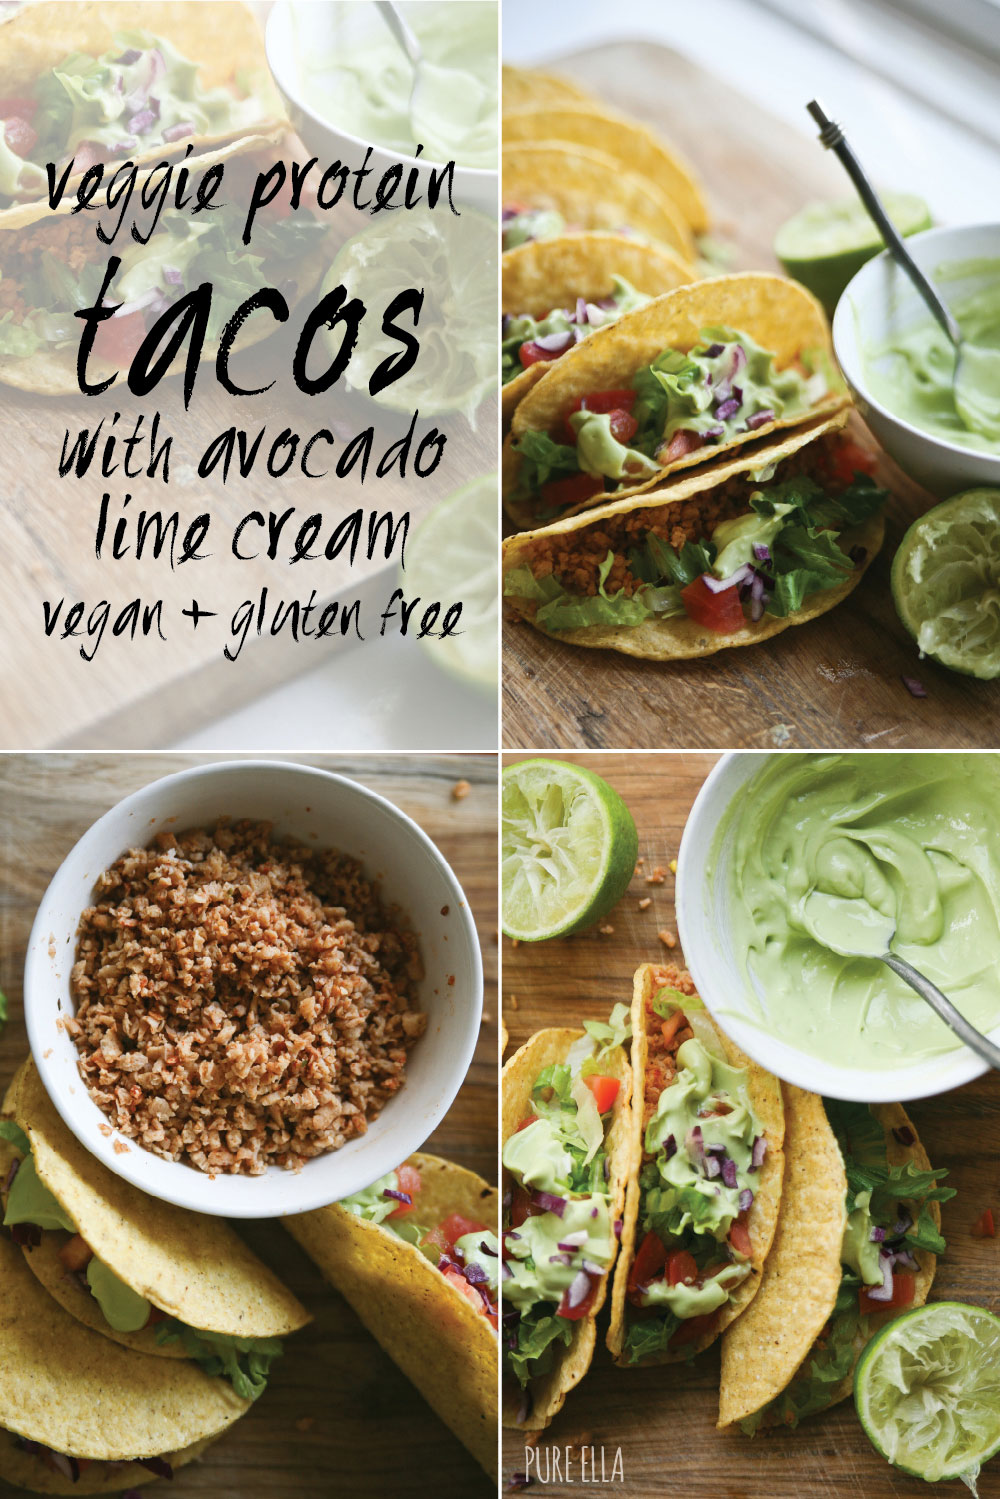 Pure-Ella-gluten-free-and-vegan-Veggie-Protein-Tacos-with-avocado-lime-cream5